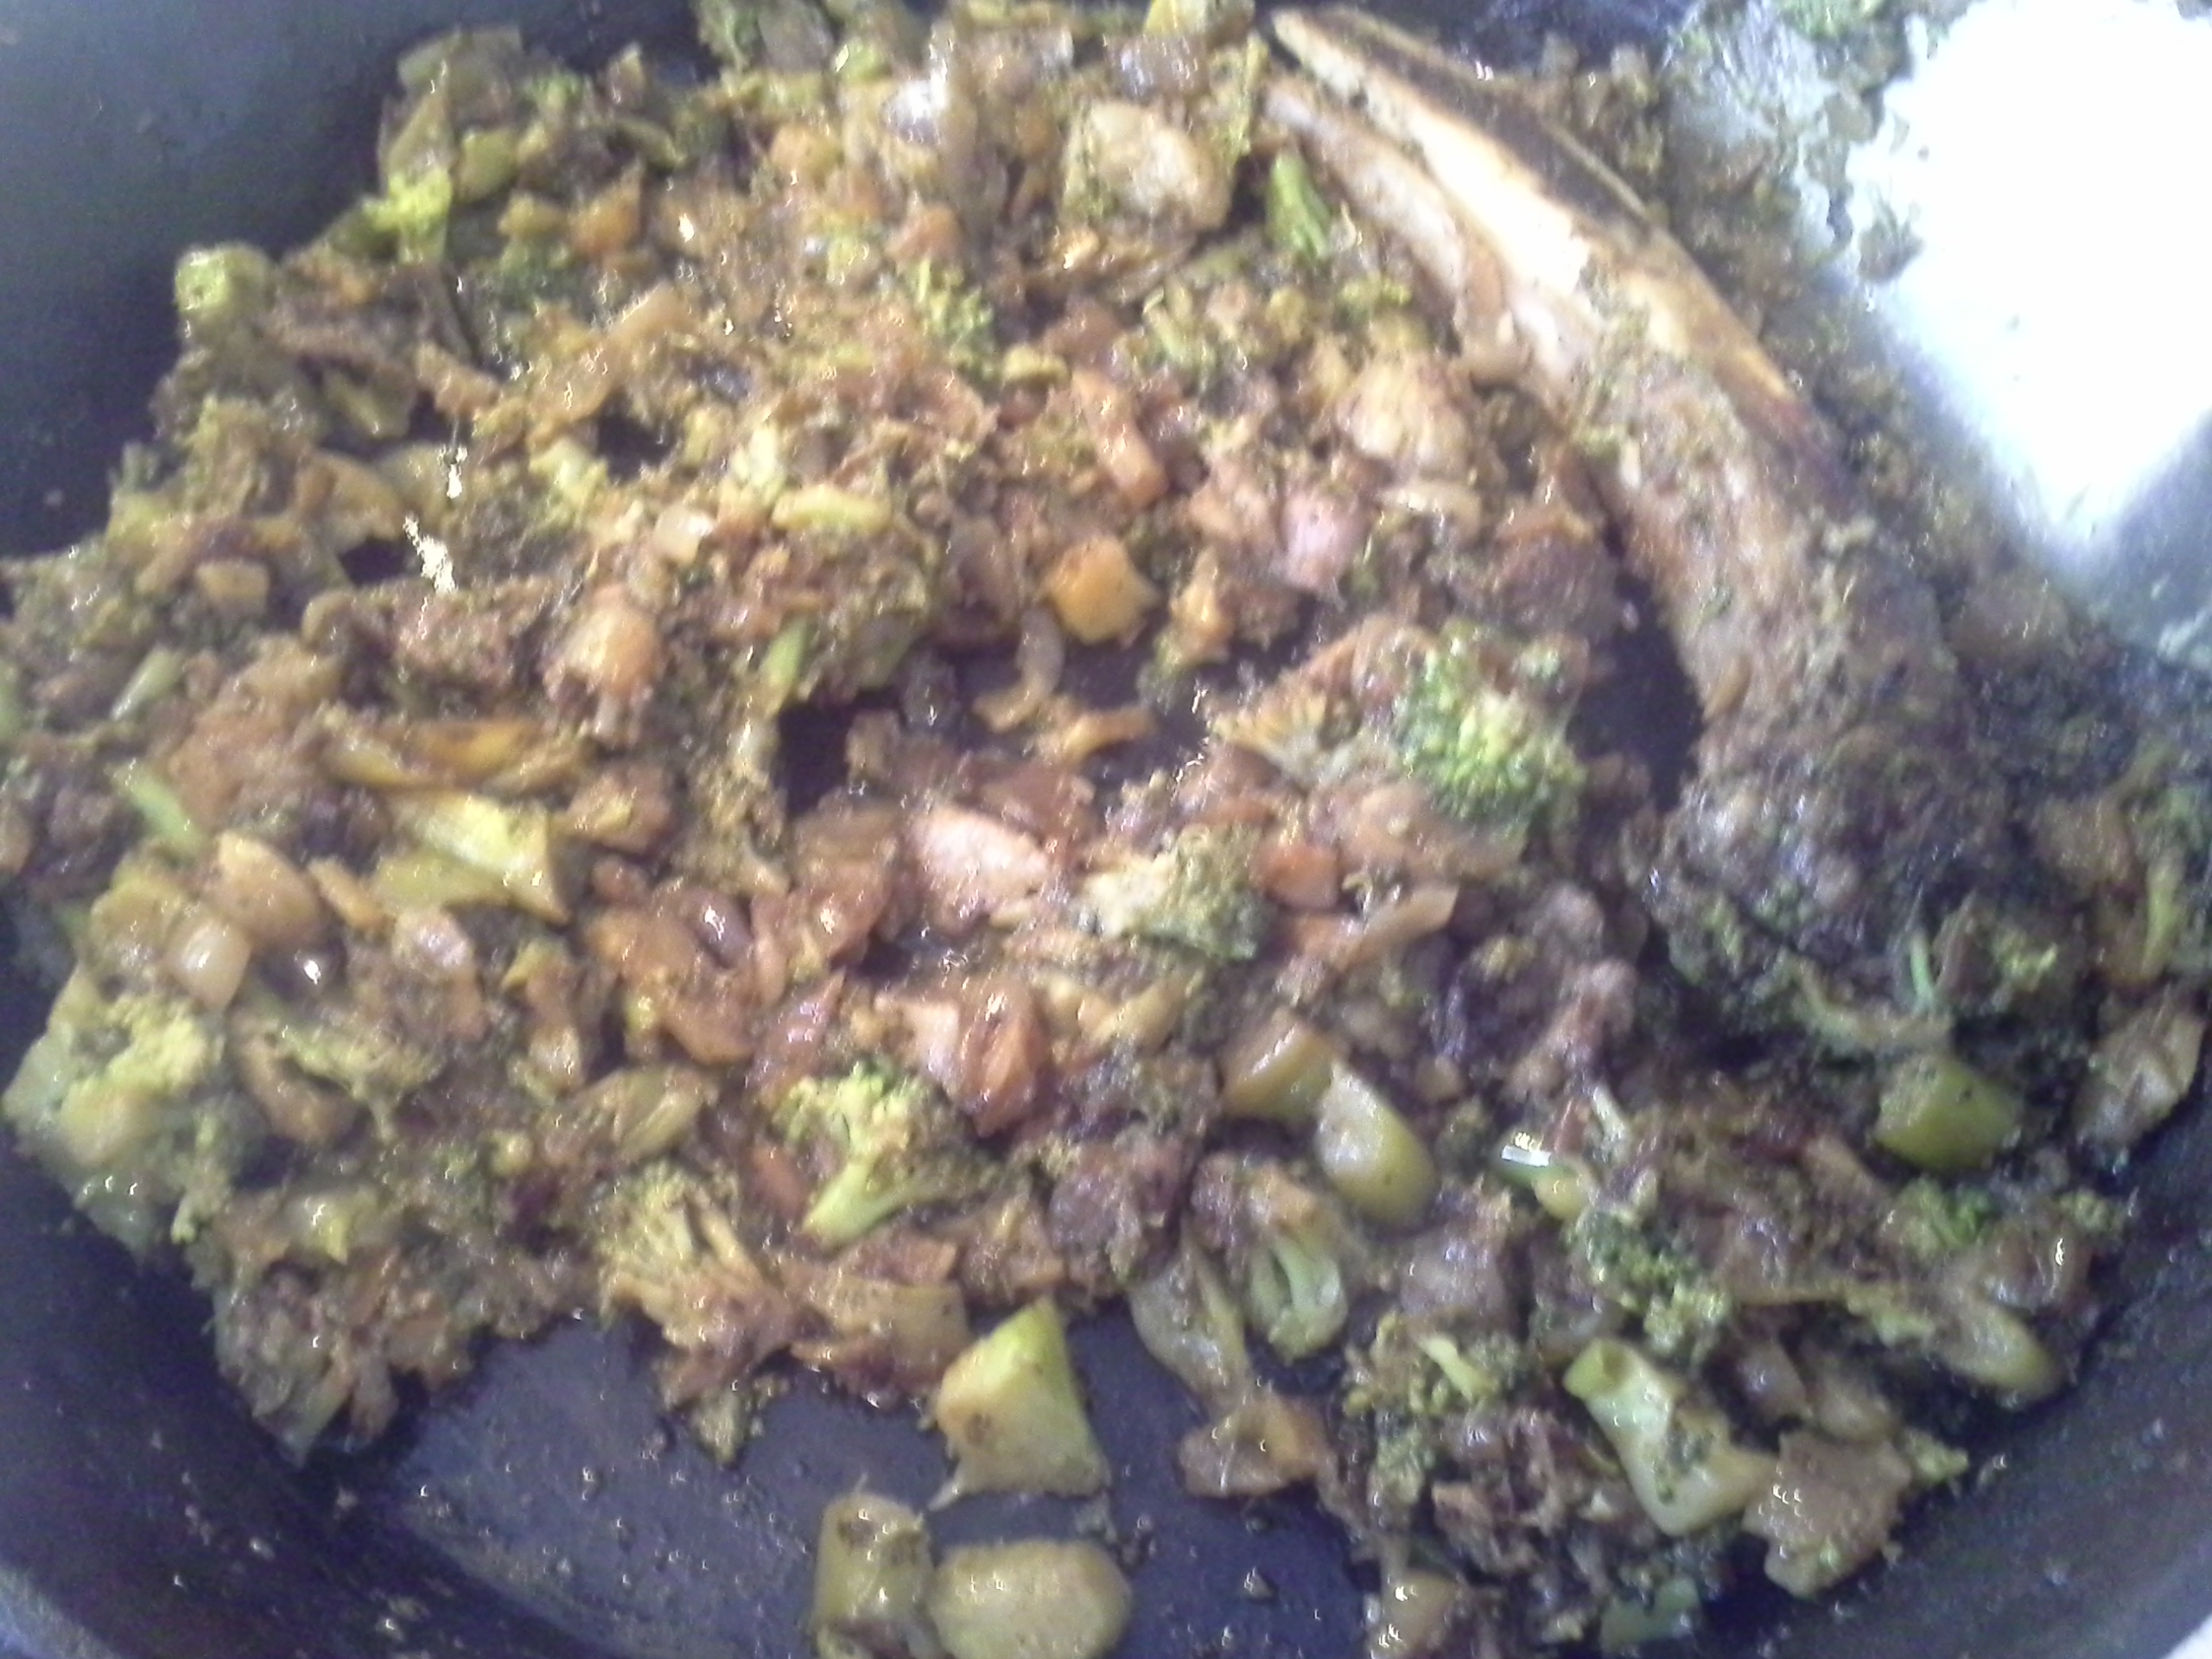 Breakfast: 11:10 a.m. | 5 oz. ribeye steak, 1/2 full head & stem of broccoli, 1/2 sweet onion, 2 Tbsp. coconut oil, herbs & spices